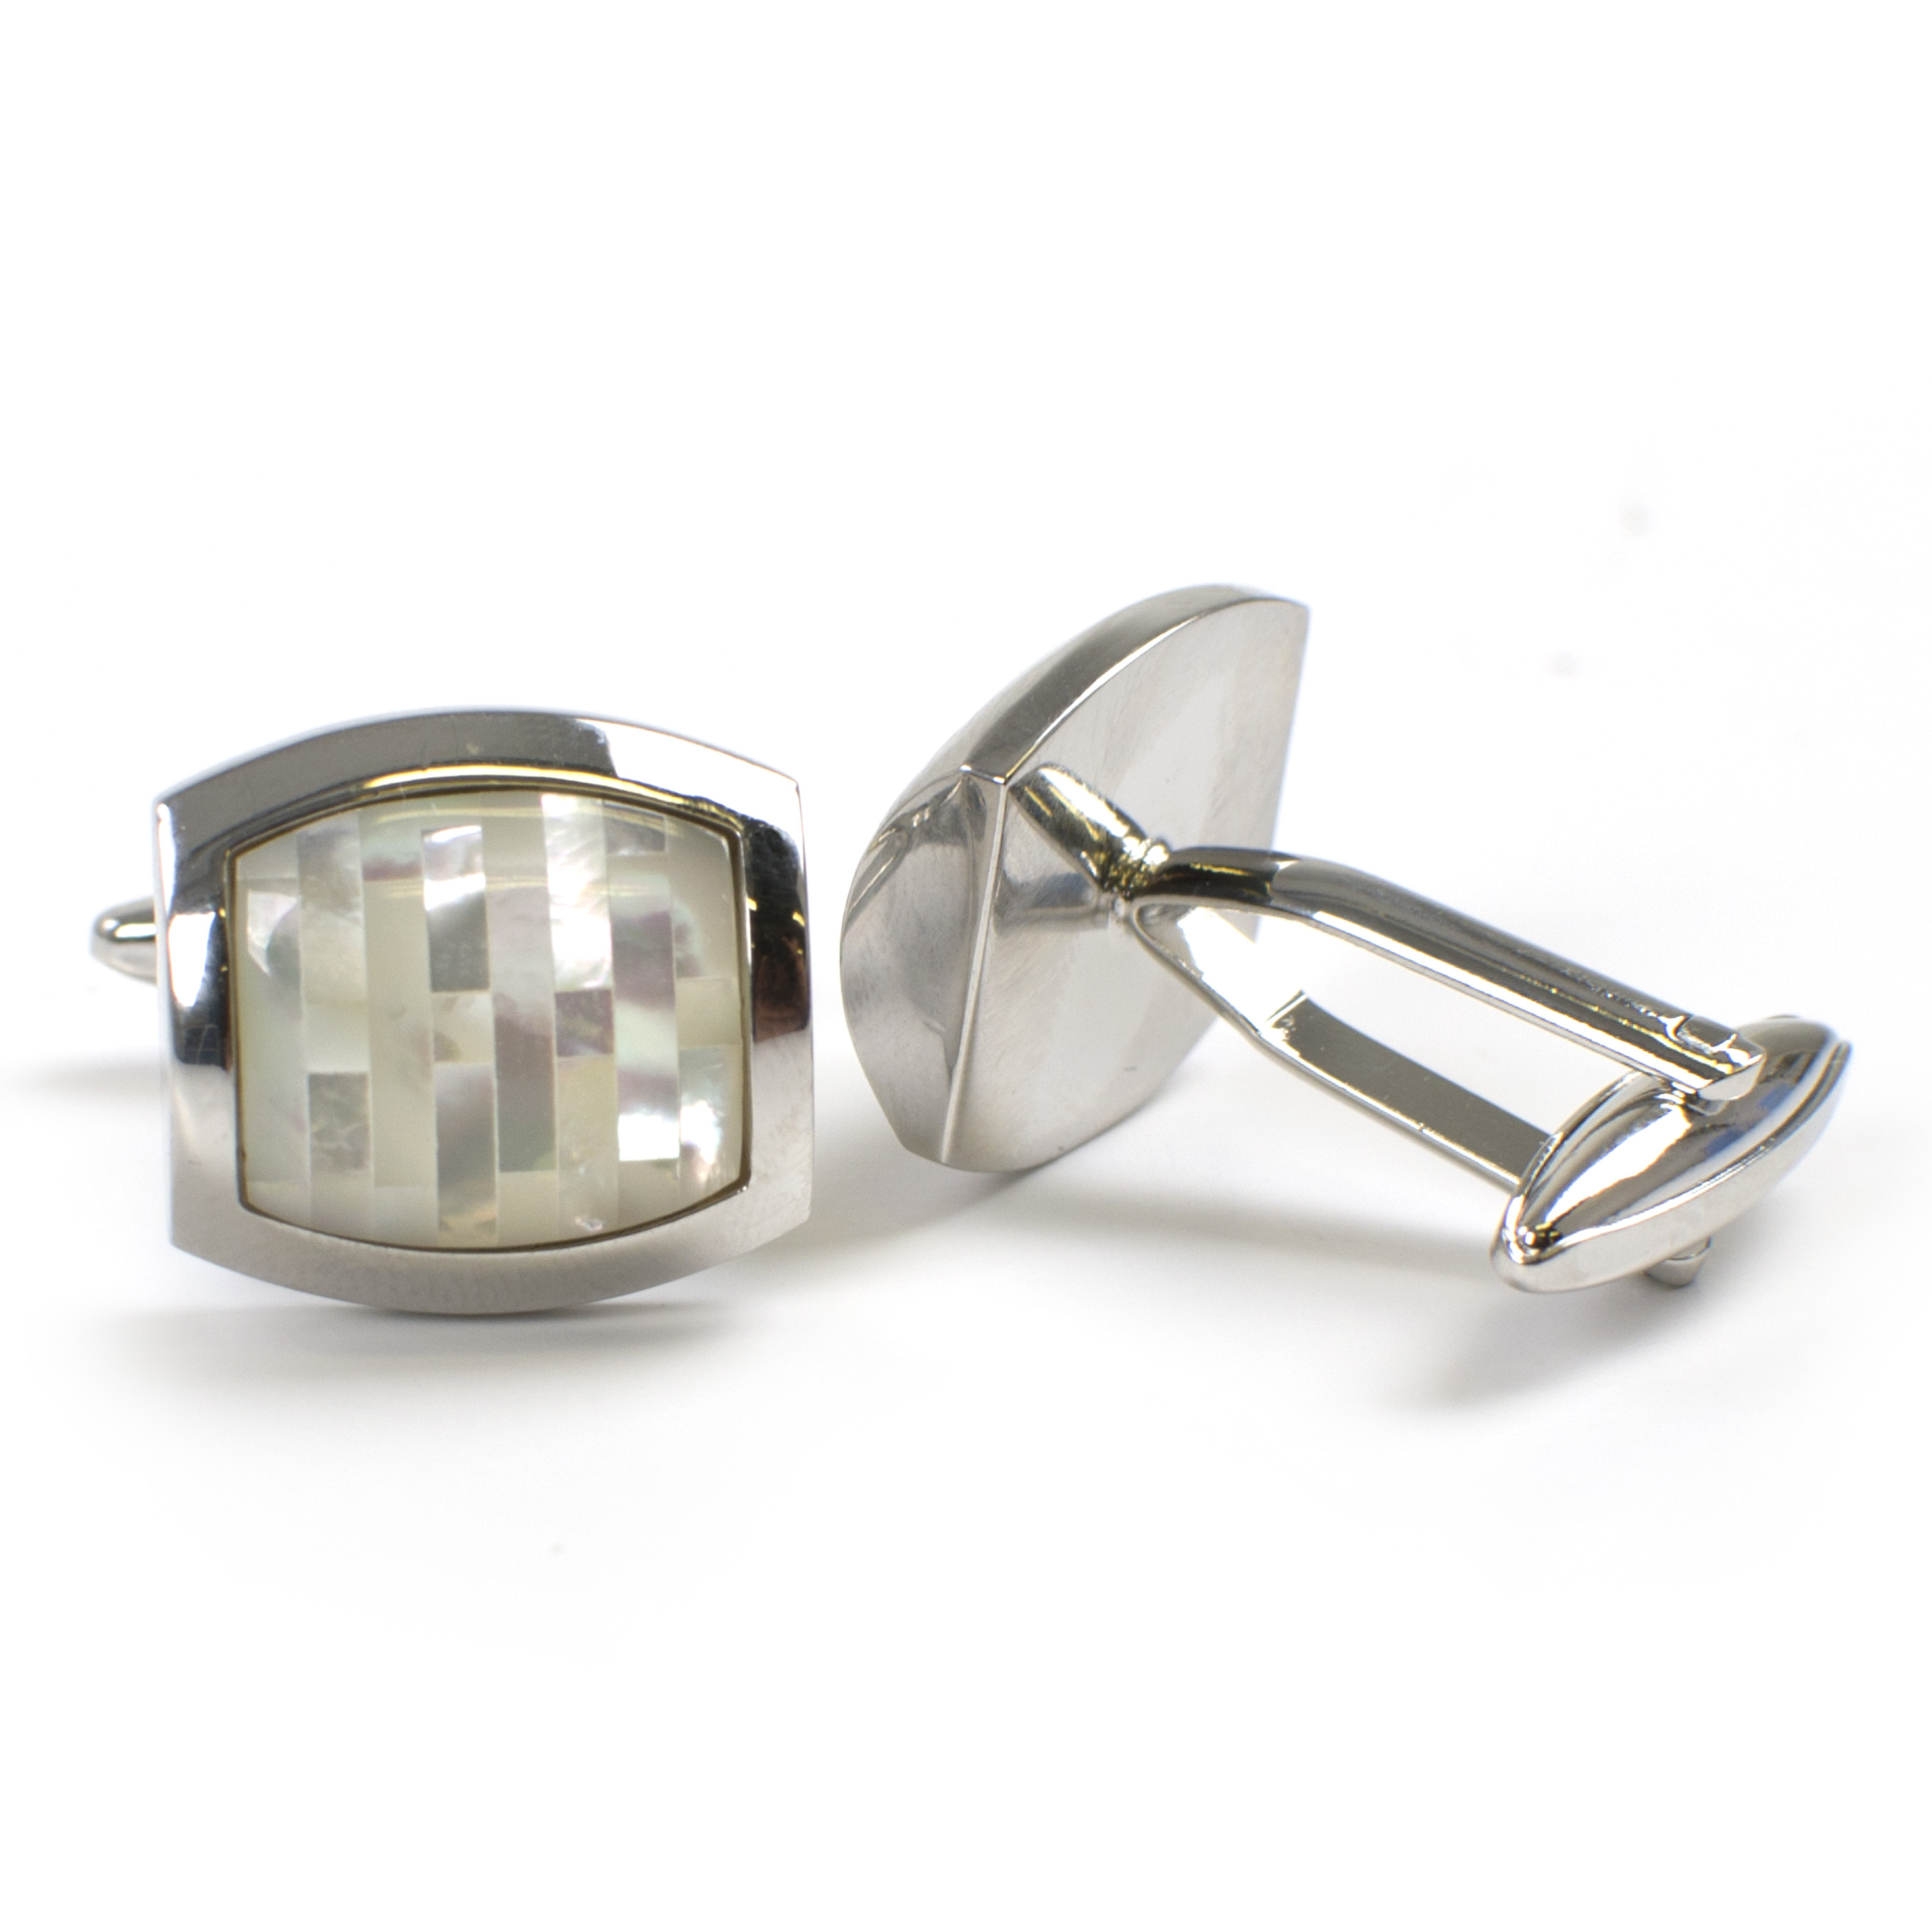 Cufflinks with mosaic mother of pearl inlay